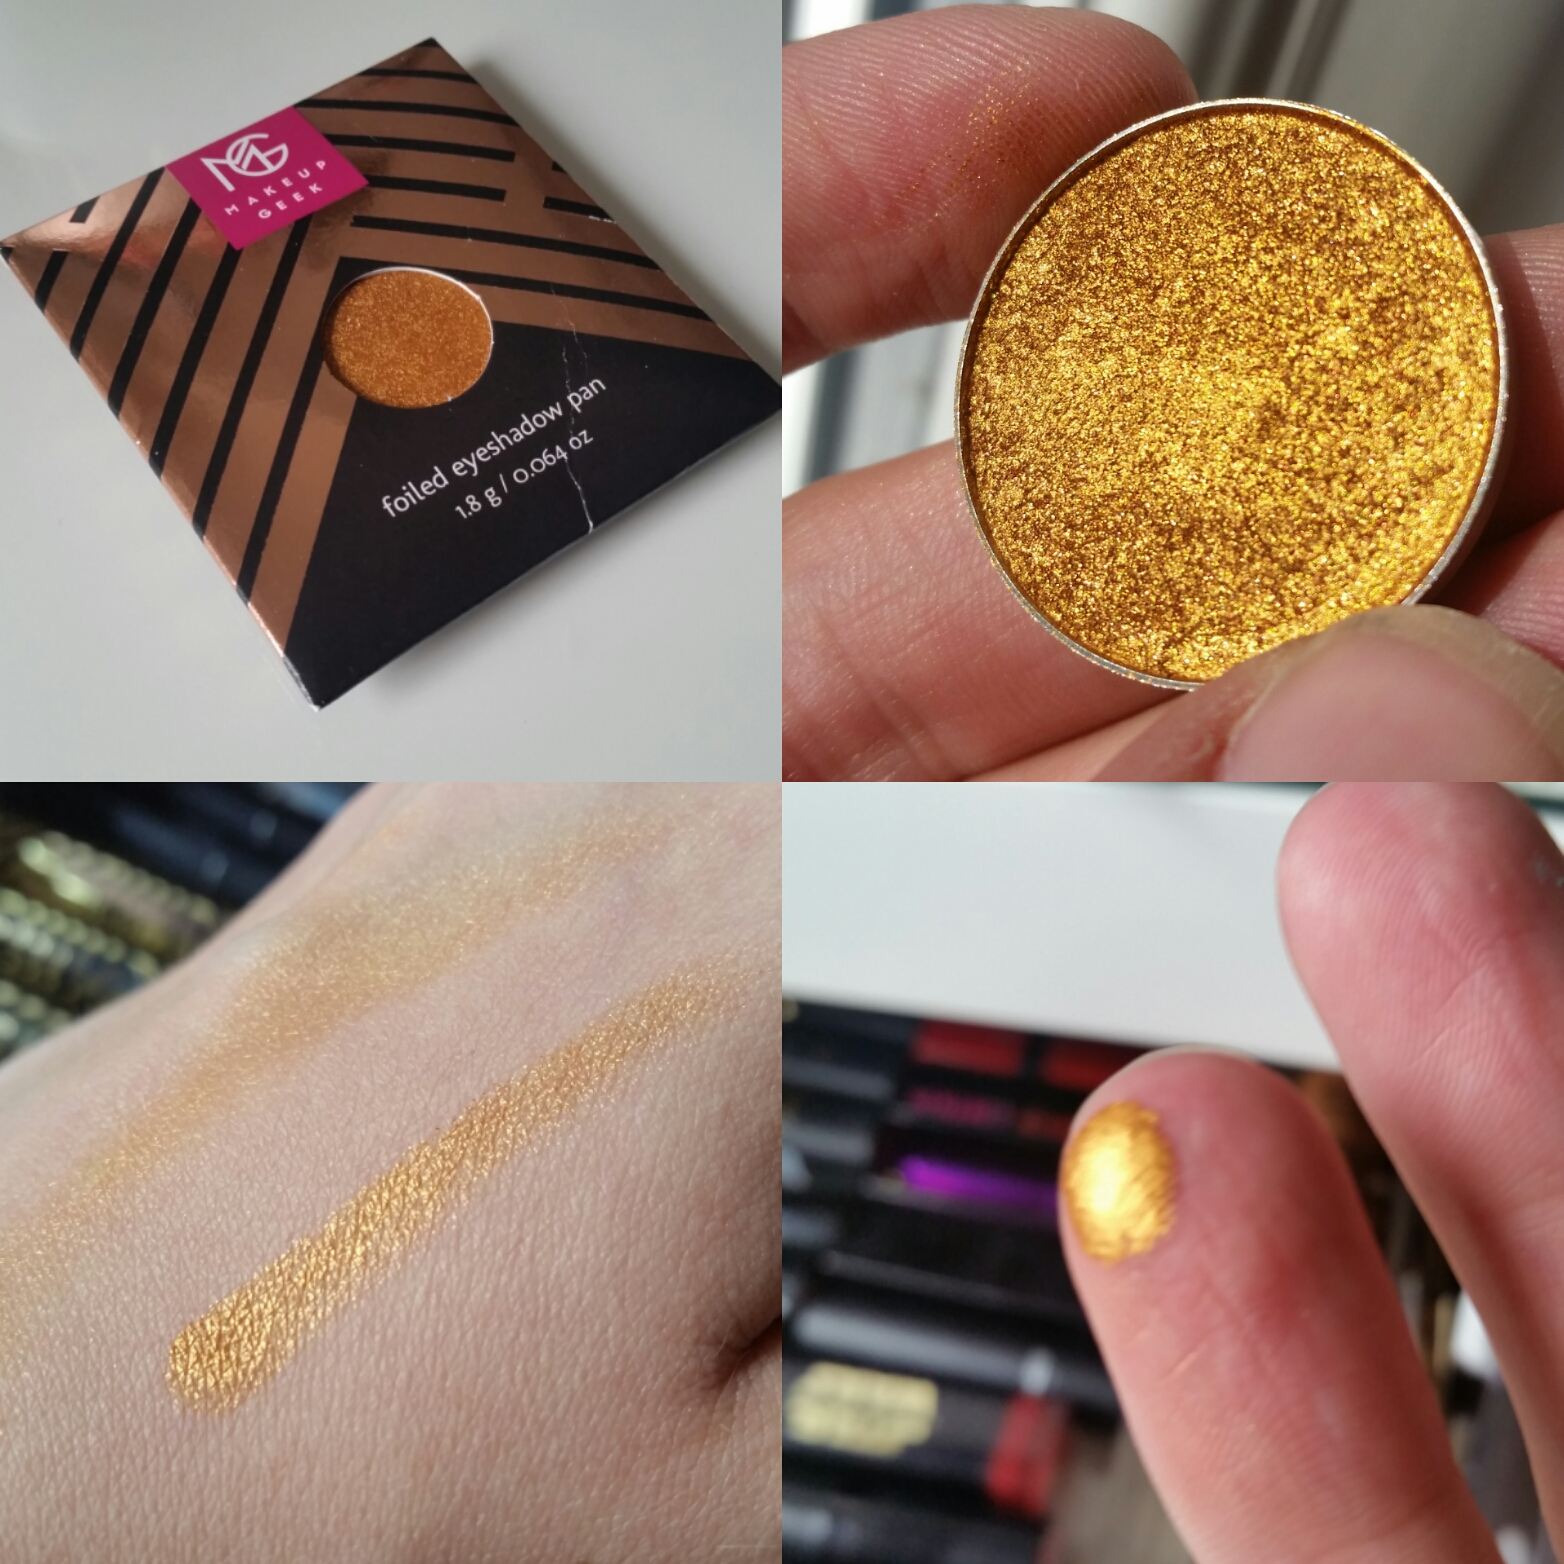 Assez Makeup Geek Foiled Eyeshadow in Untamed / Product Review & Swatch FG29